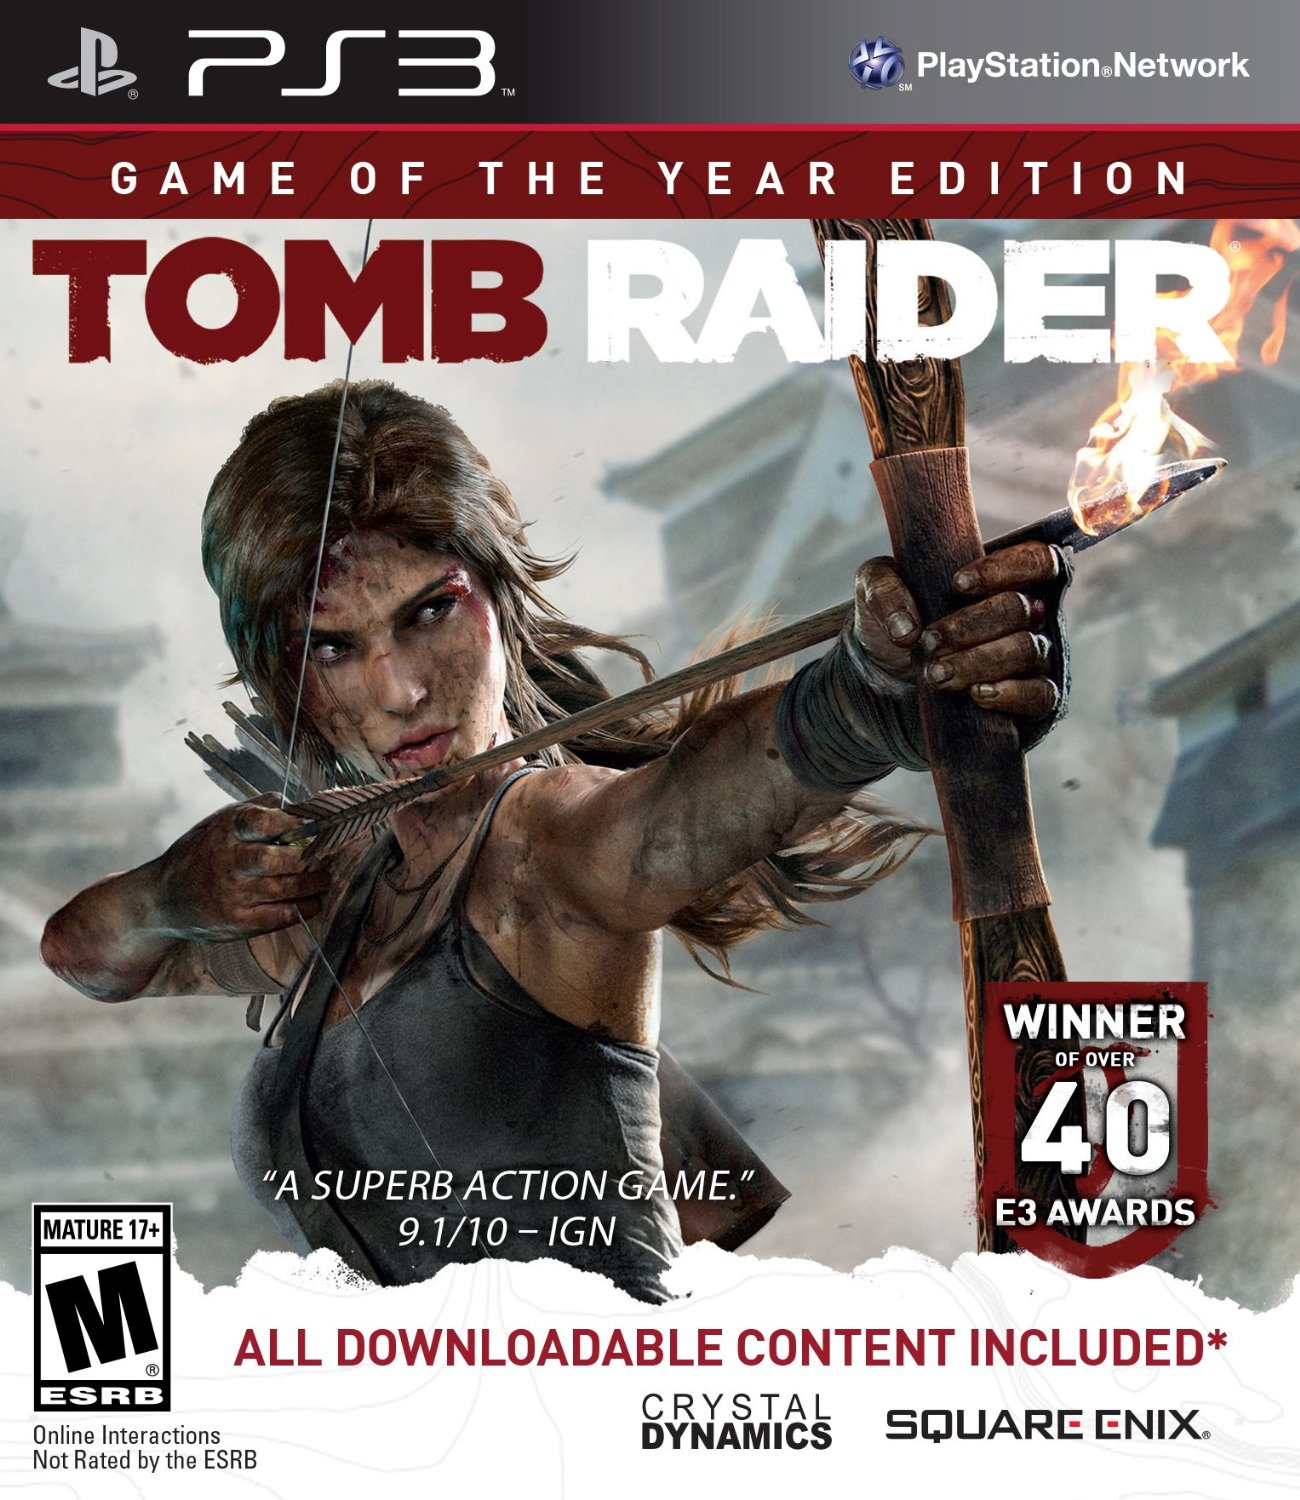 Tomb Raider Definitive Edition For Xbox One And Ps4 4k Hd: Tomb Raider Game Of The Year Edition Revealed For PS3